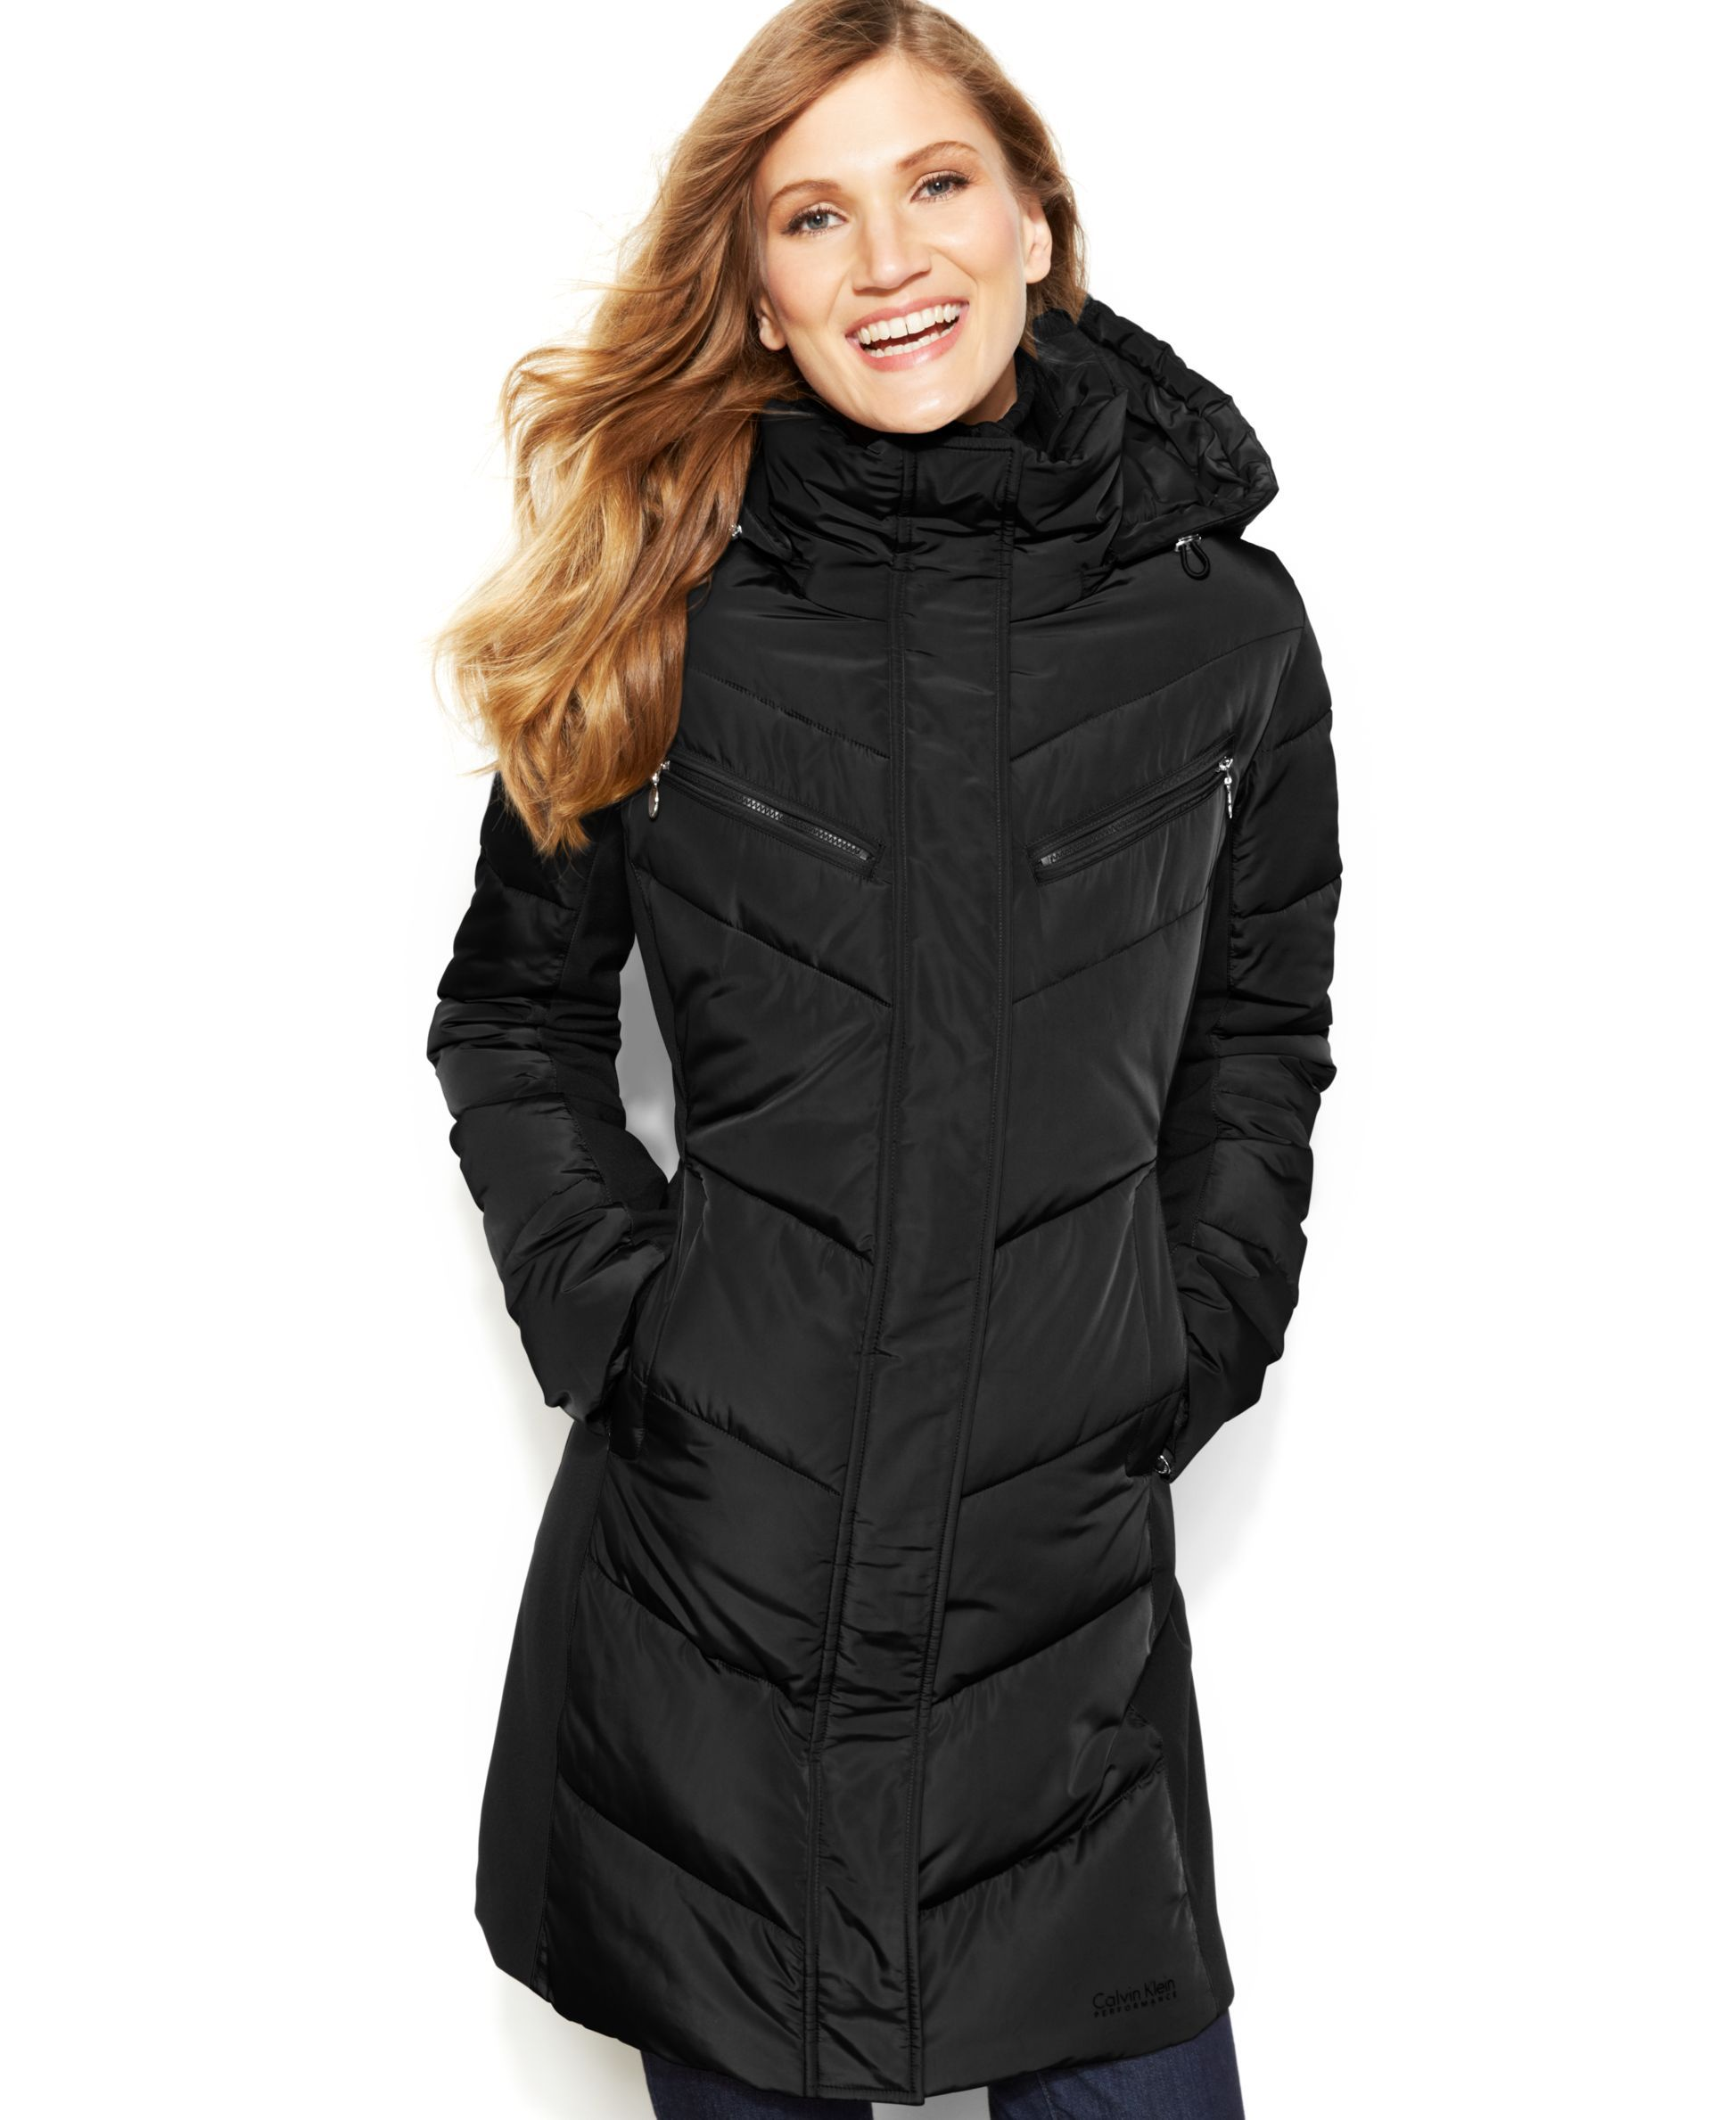 3fdea32d4 Black, small Calvin Klein Hooded Quilted Colorblock Puffer Coat ...